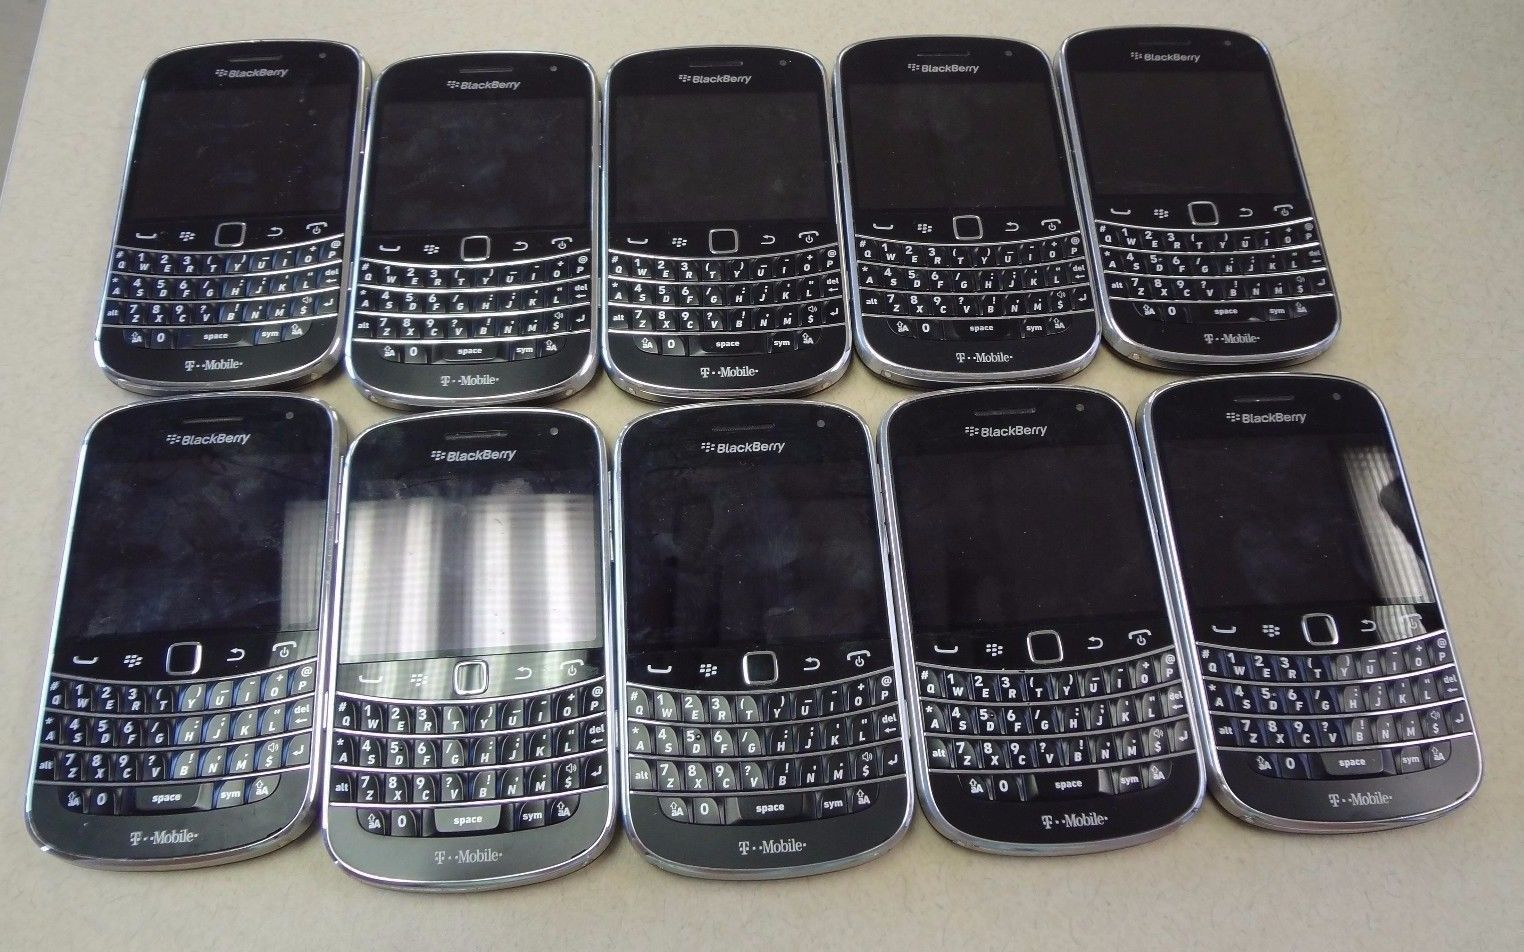 Lot of 10 BlackBerry Bold Touch 9900 Black Smartphone T- MOBILE  RDV71UW https://t.co/0t9dhCA3W0 https://t.co/pGdWKJefkd